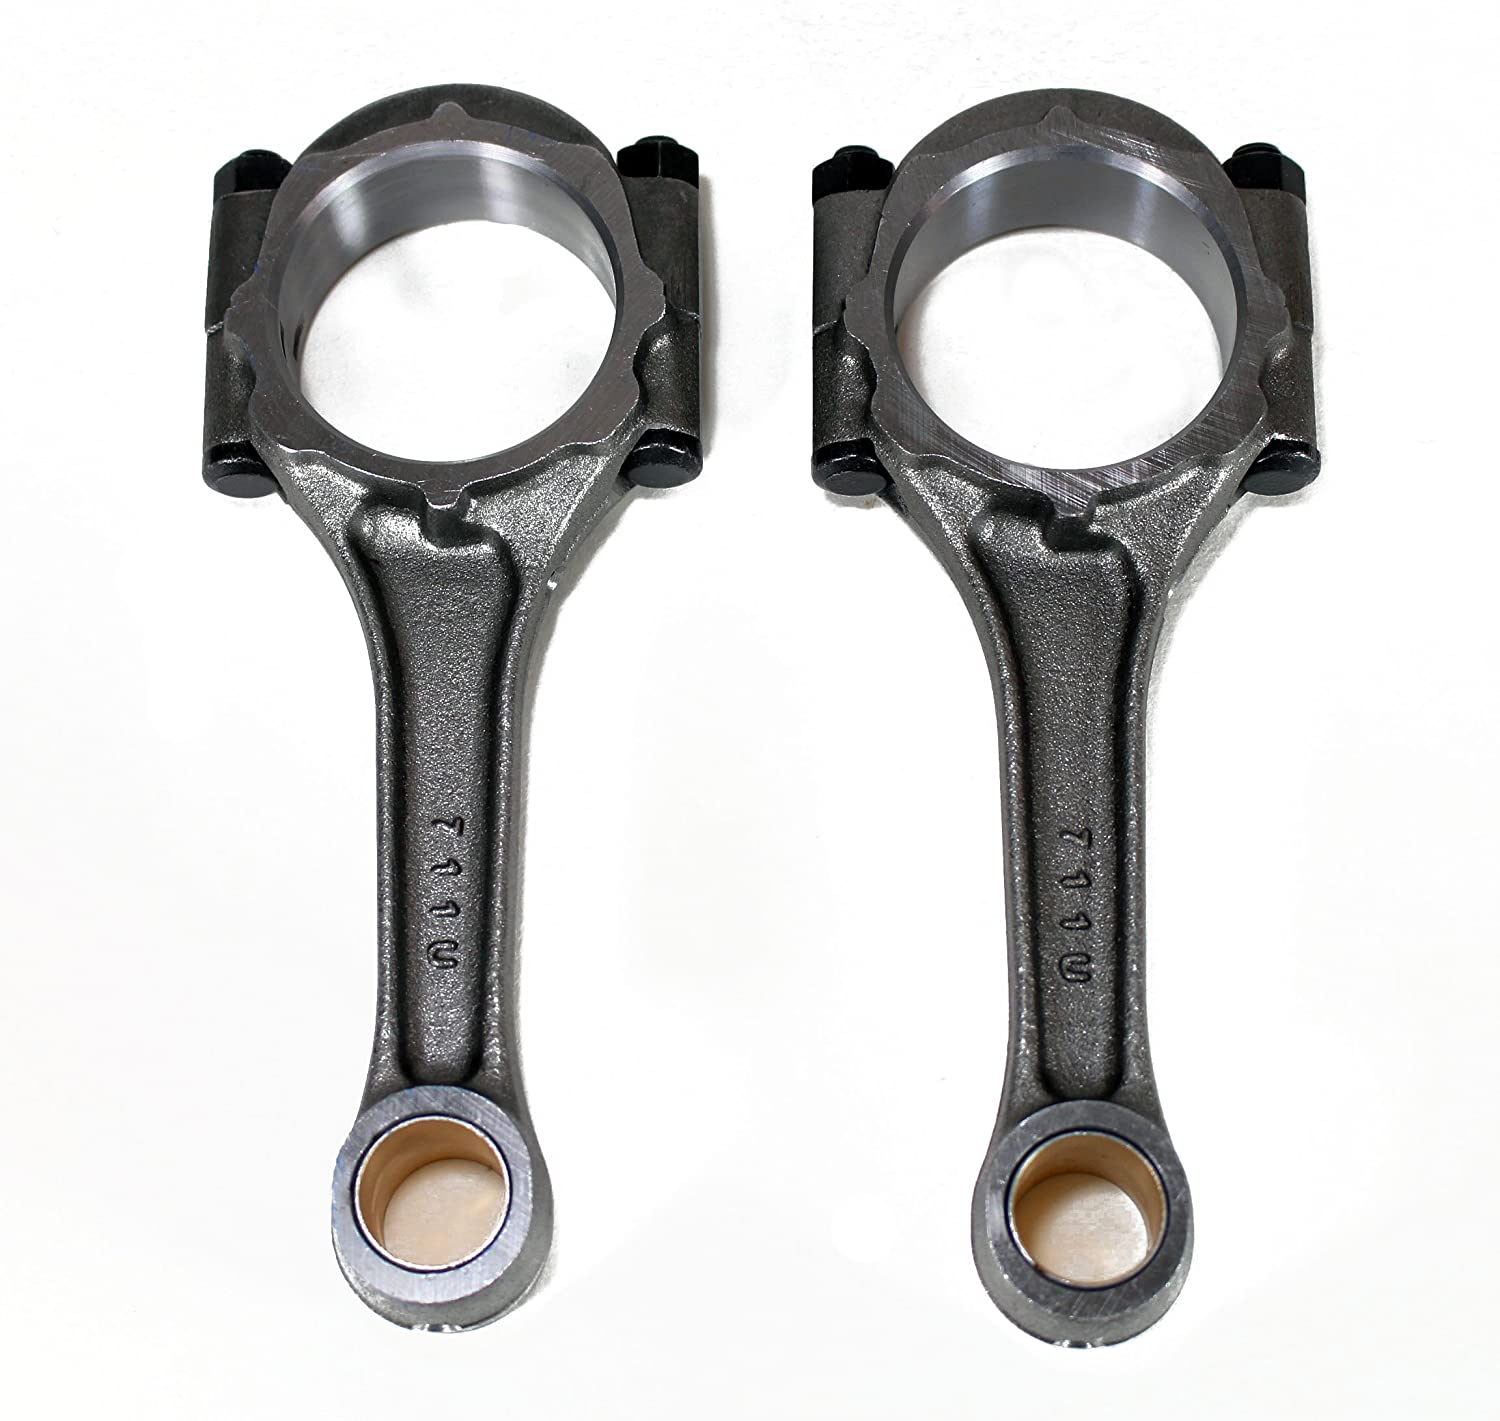 2pc Save money New Safety and trust Connecting Rod for Toyota 2.4L 1985-1995 Pickup 4Runner